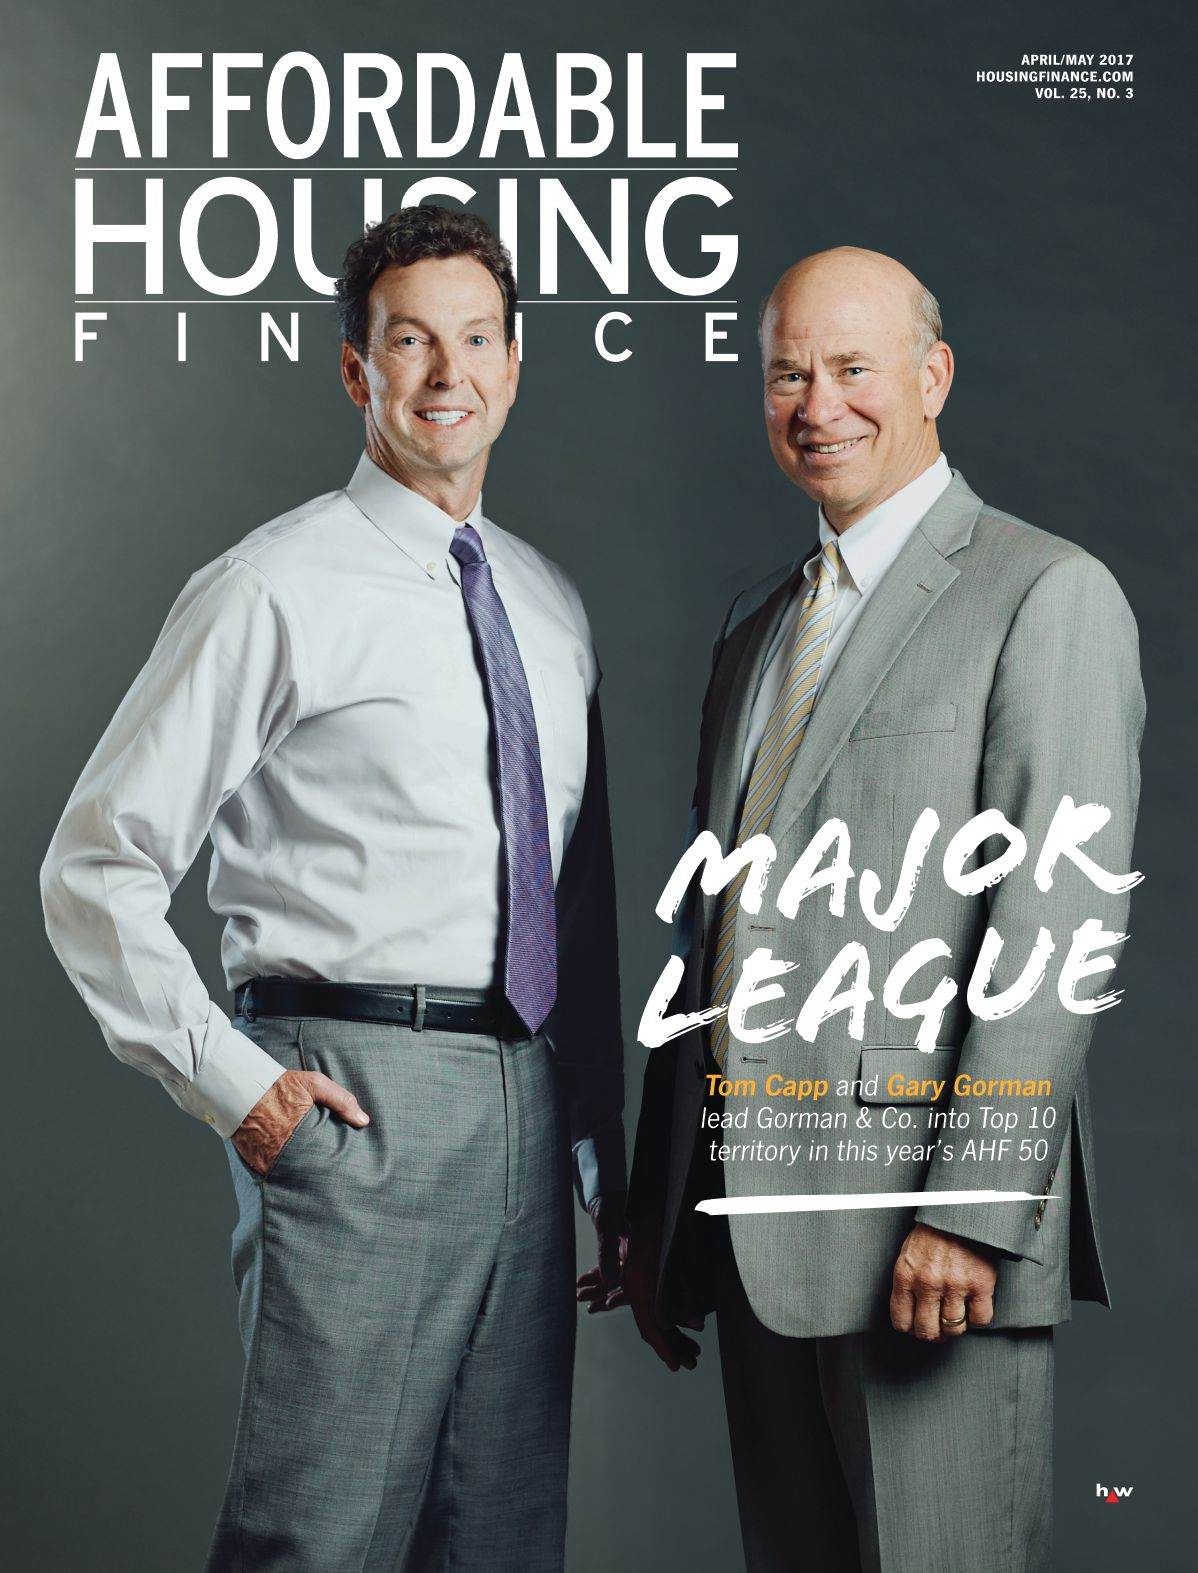 - Madhouse named one of the Top 50 Affordable Housing Developers of 2016.